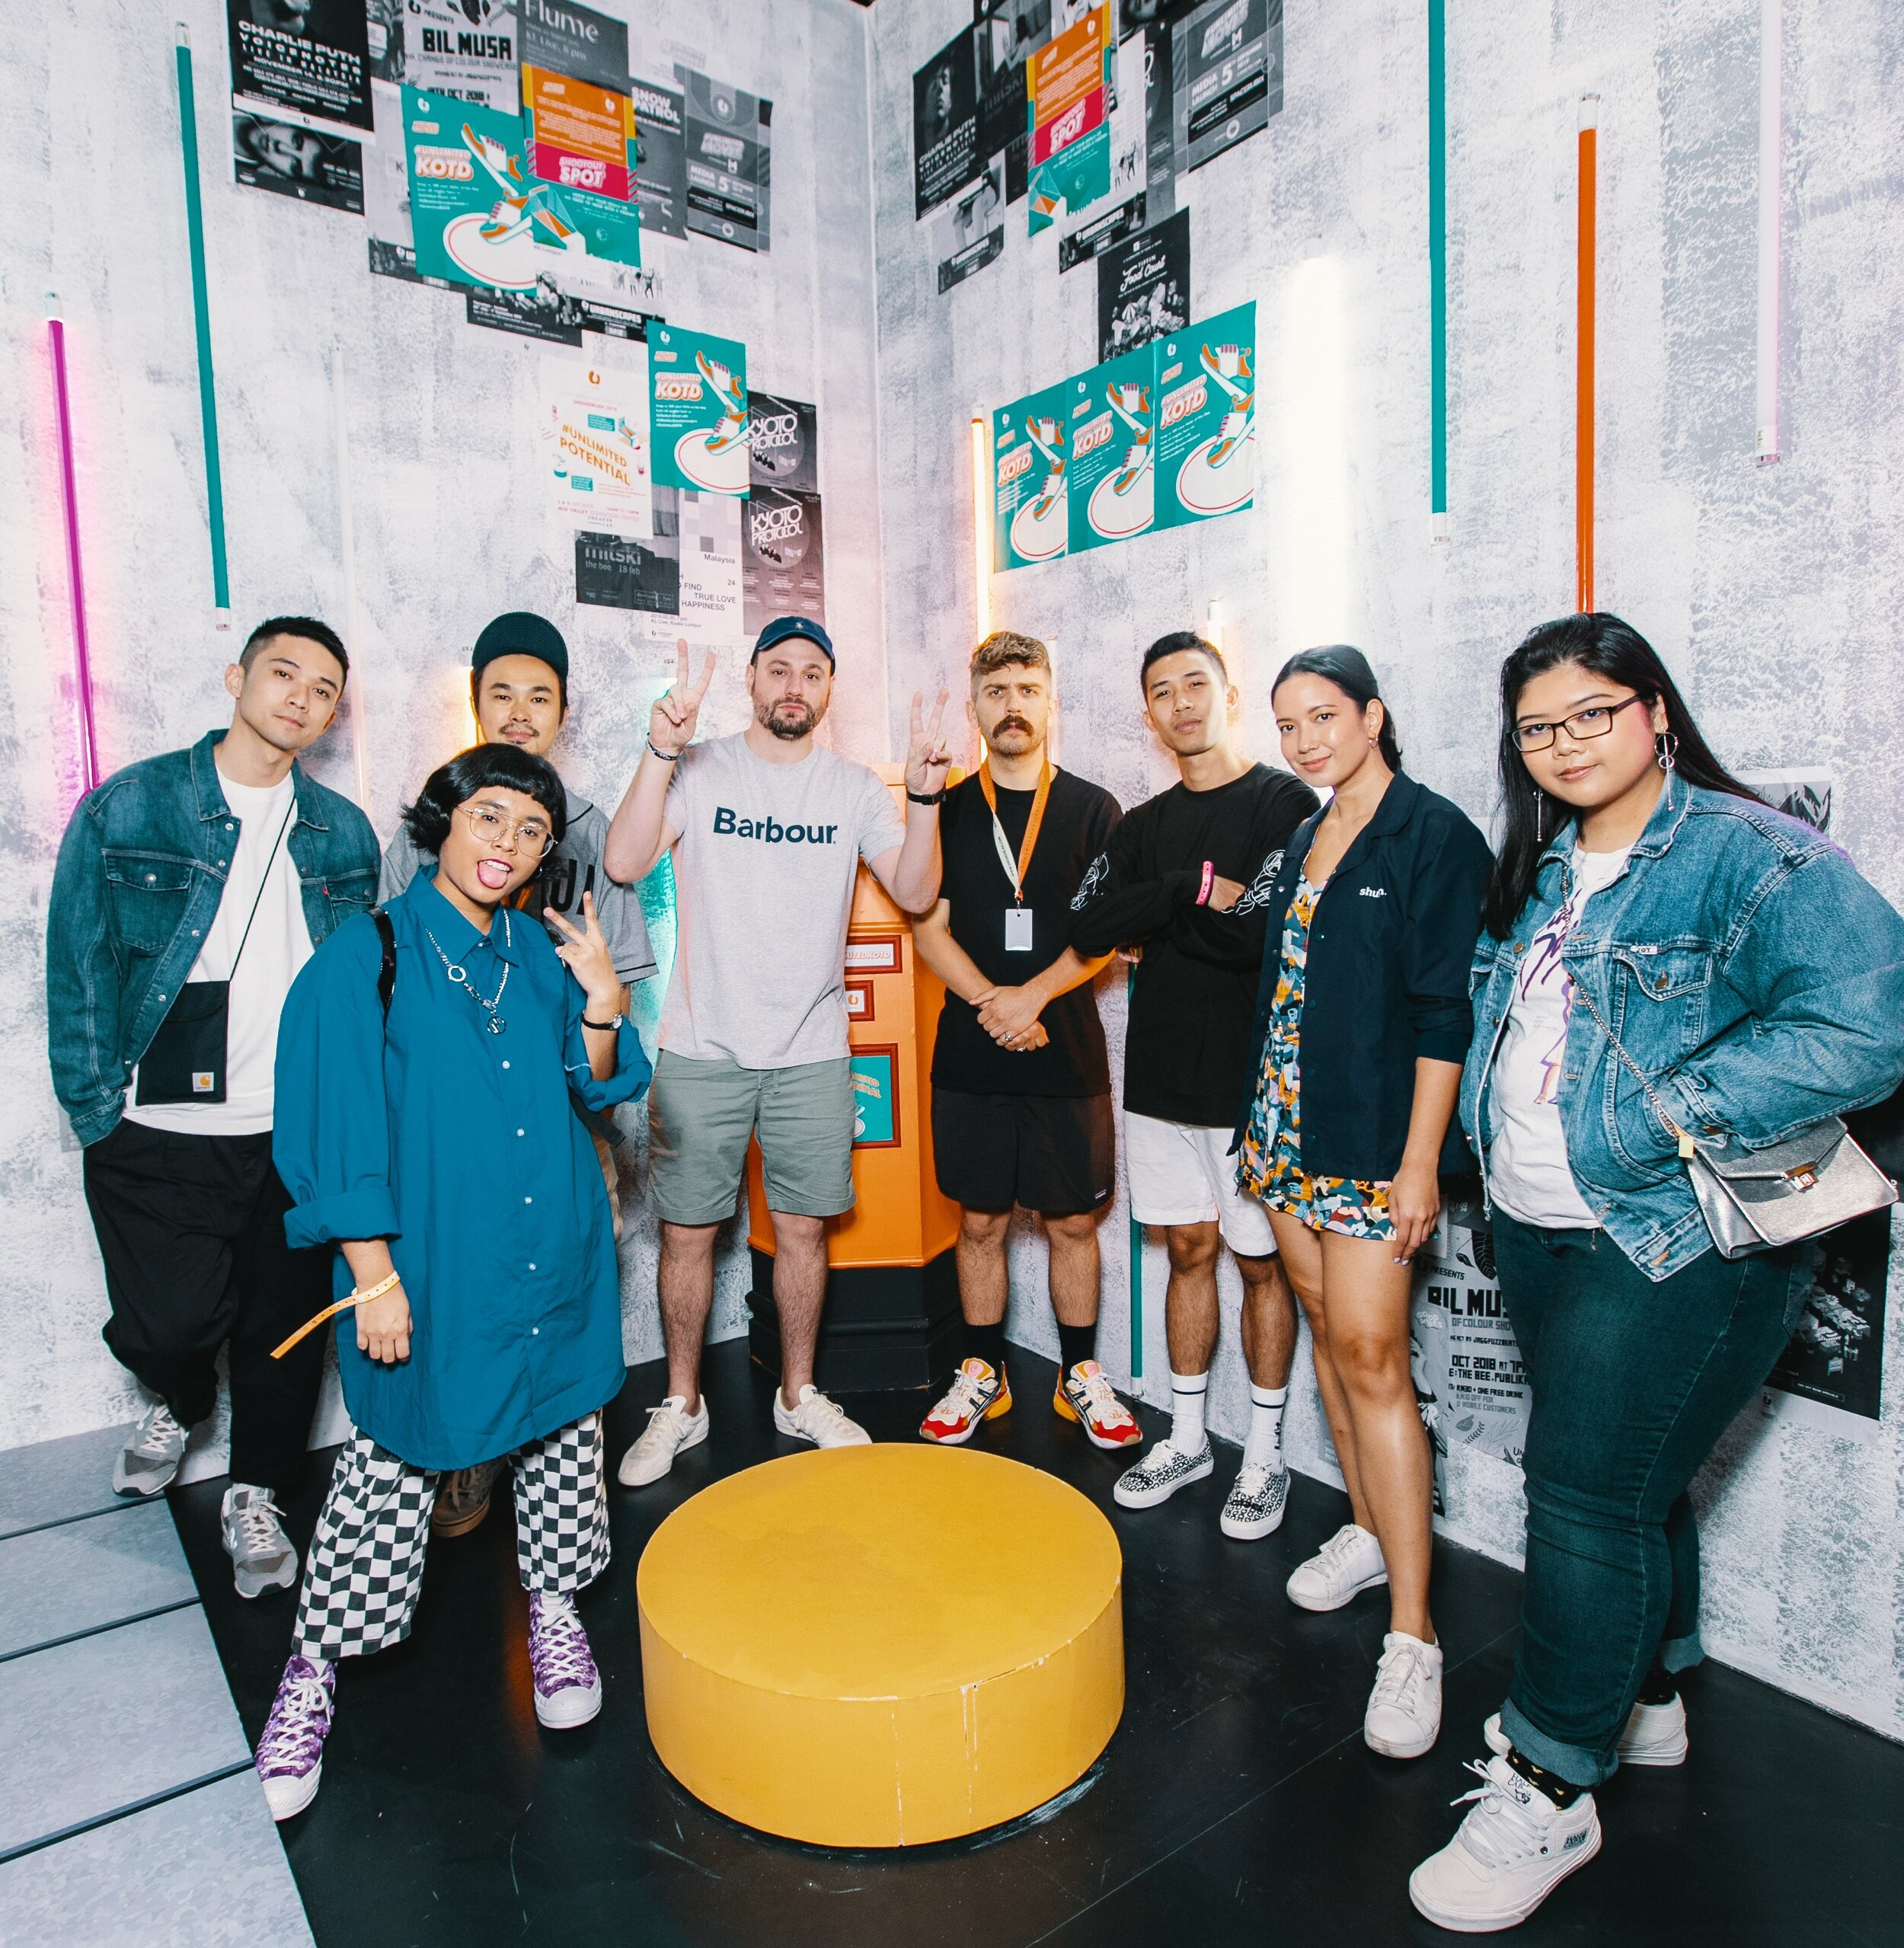 U Mobile x Sneakerlah 3:  Fans and guests even got to meet Brendan Dunne and Matt Welty of popular sneaker talk show, Full Size Run. Full Size Run's participation at SneakerLAH 2019 was made possible by U Mobile.